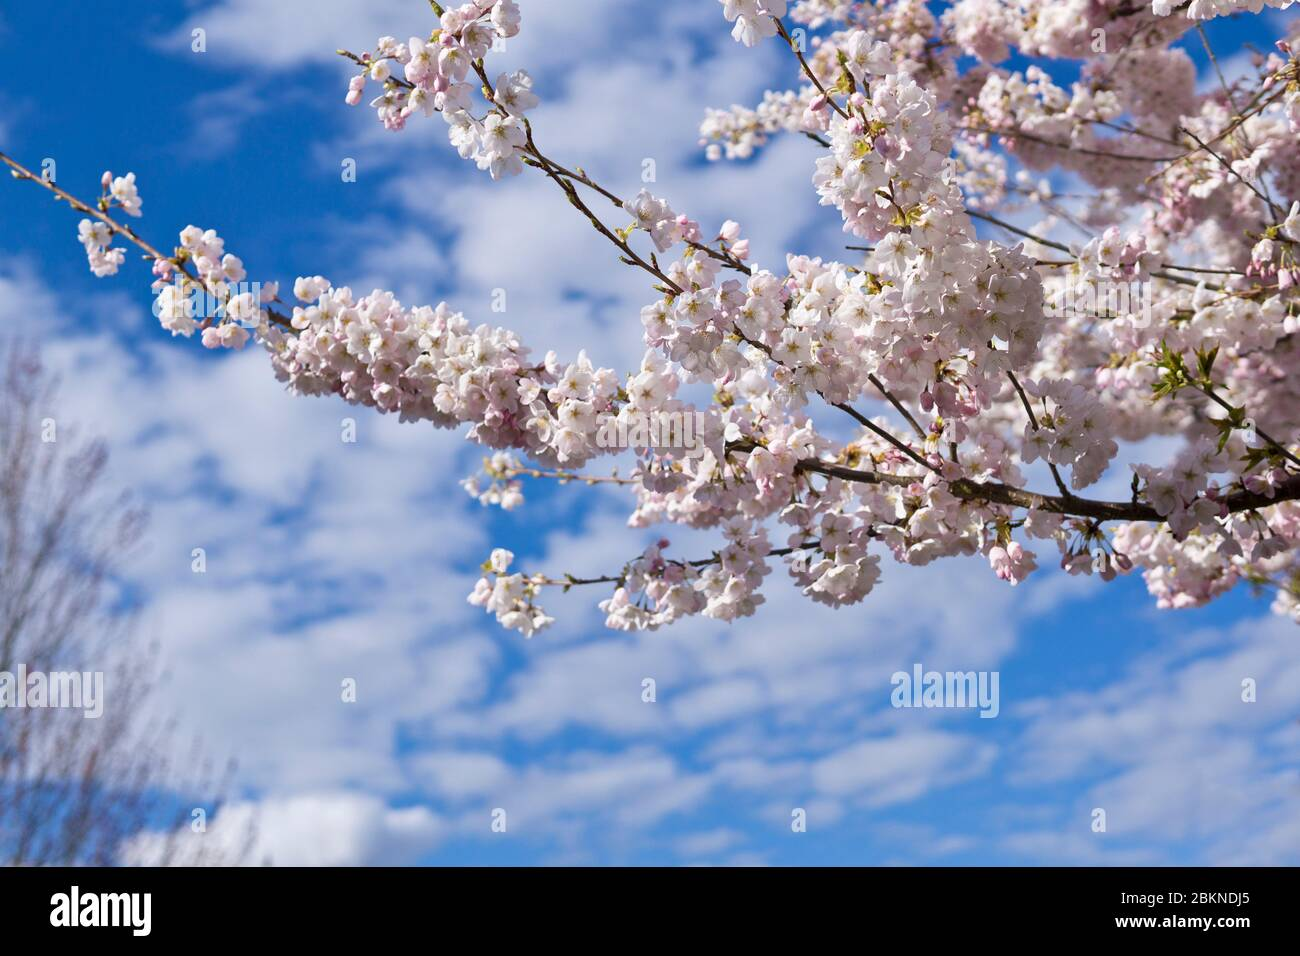 Beautiful pale pink ornamental cherry blossoms against the blue sky in Vancouver Canada. Stock Photo